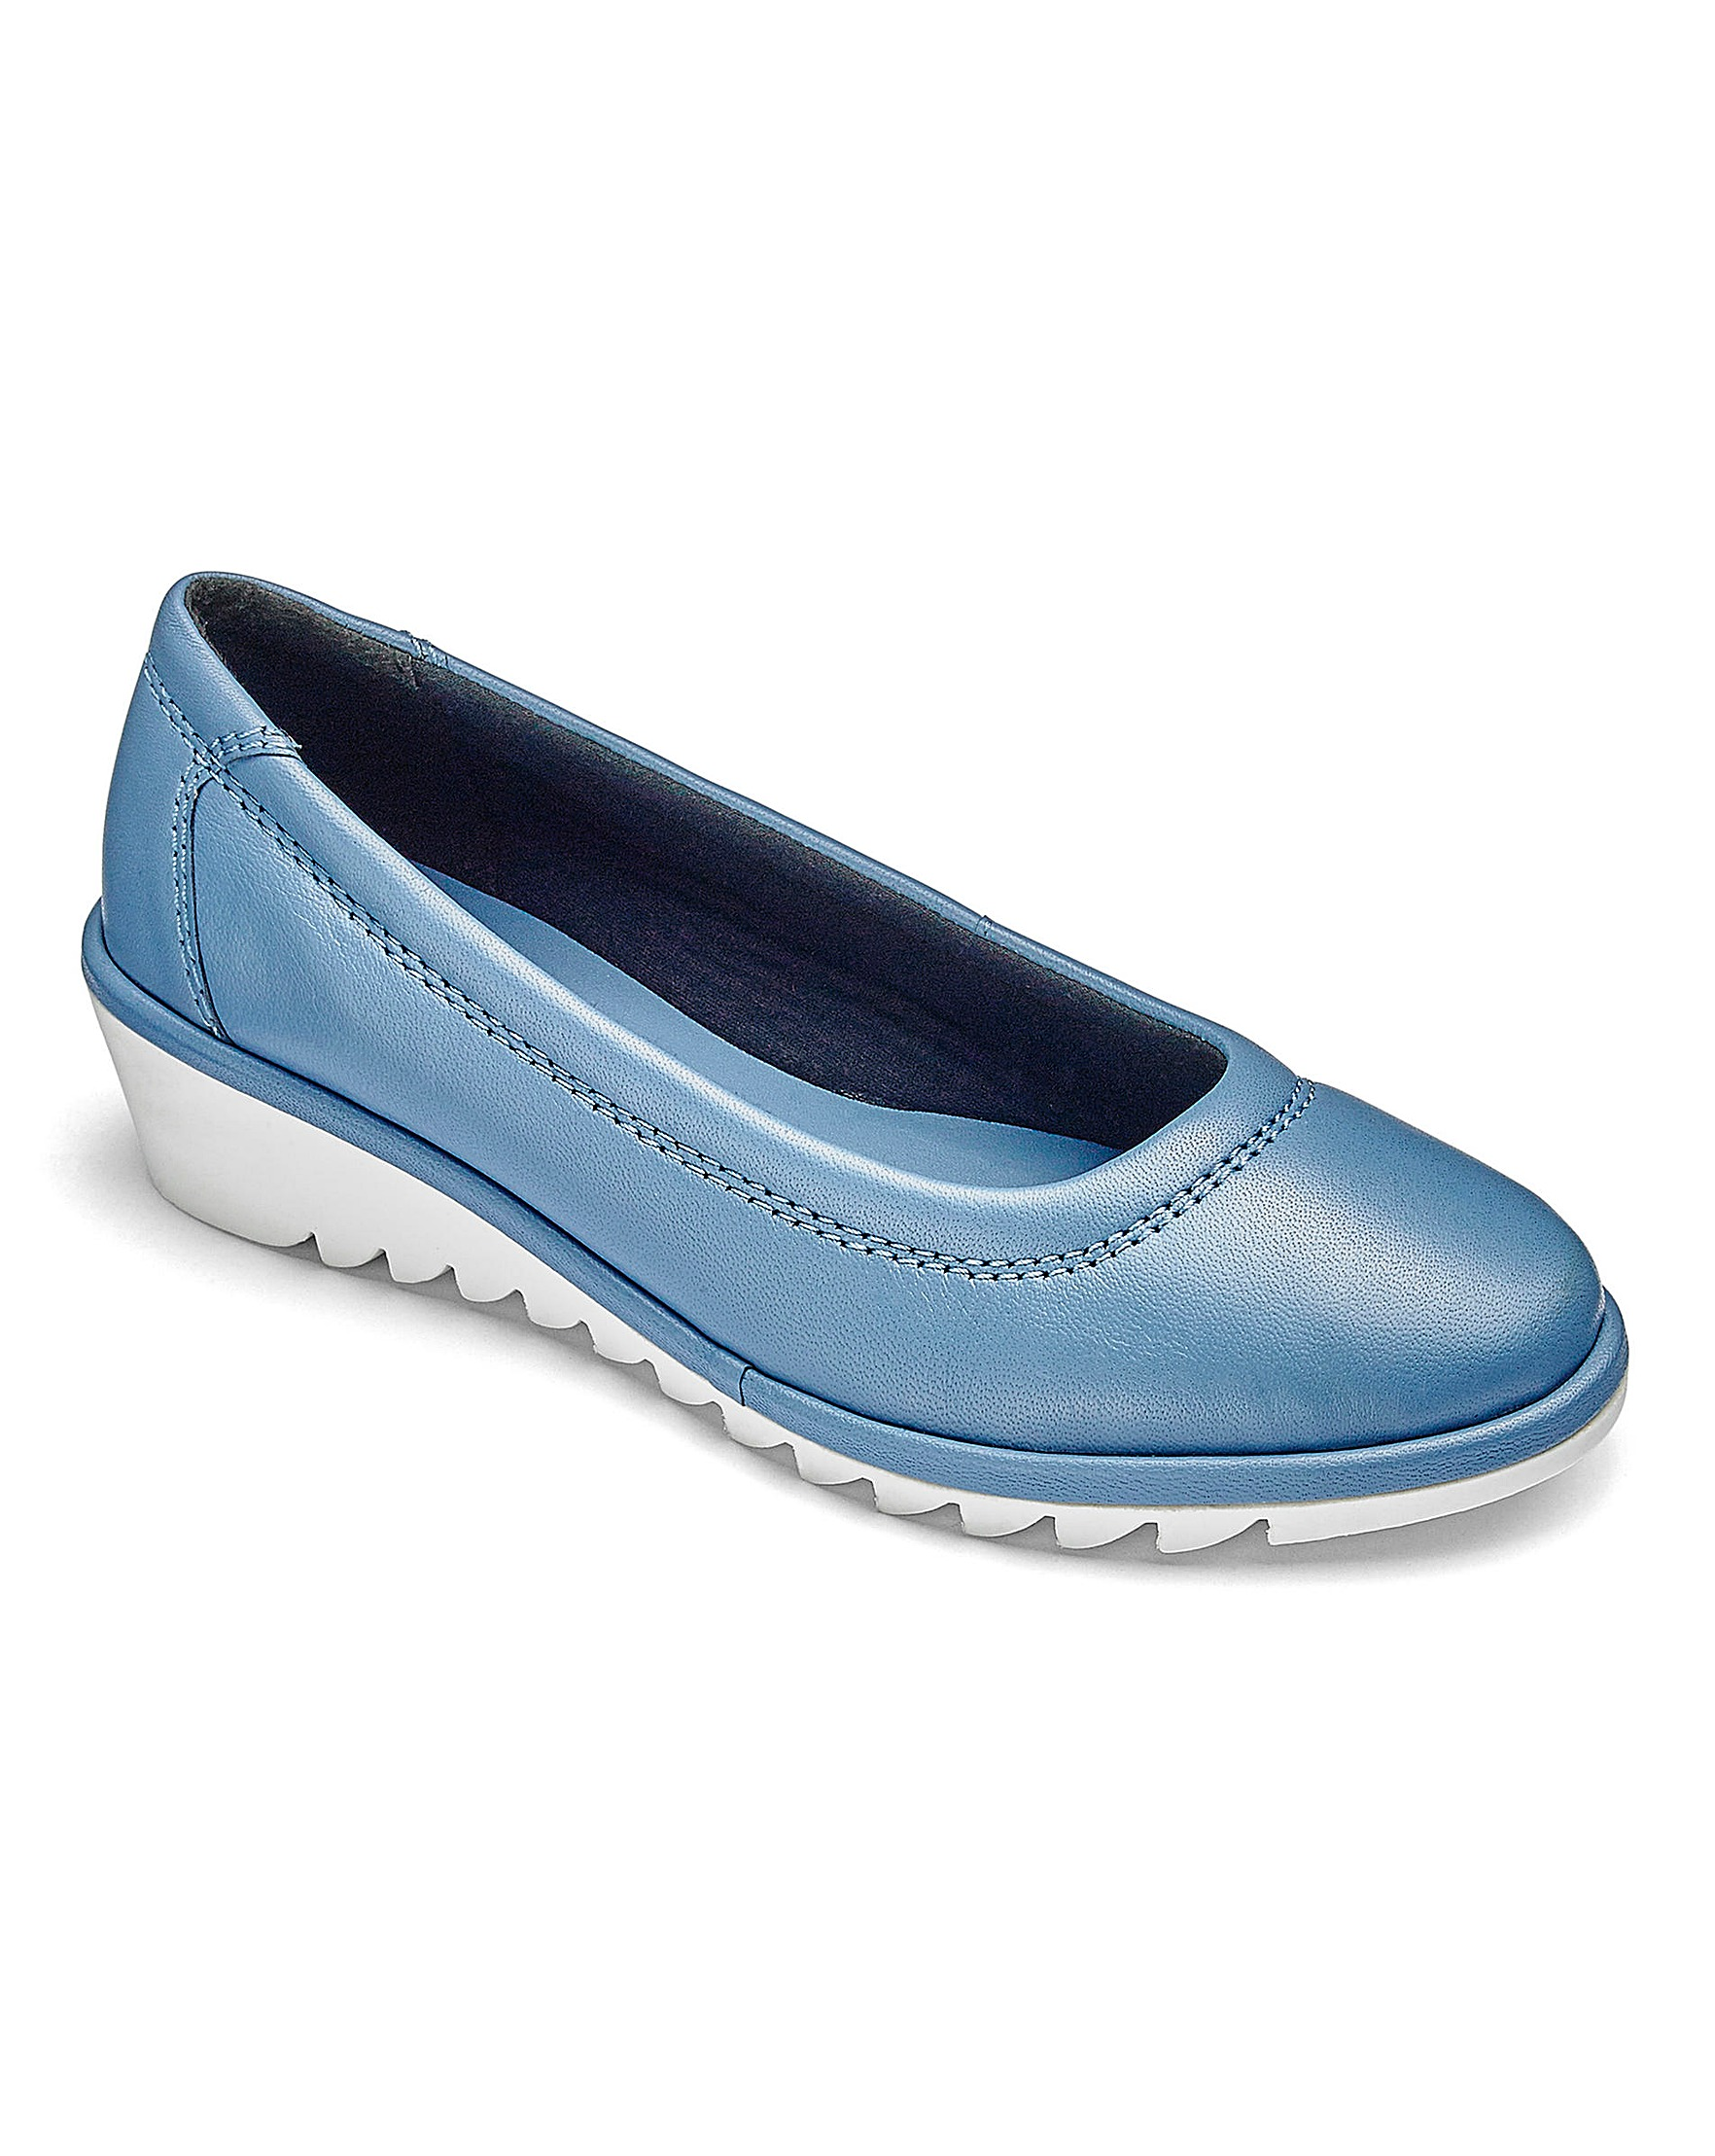 d4da23ed1fb Heavenly Soles Leather Slip On Shoes Wide E Fit